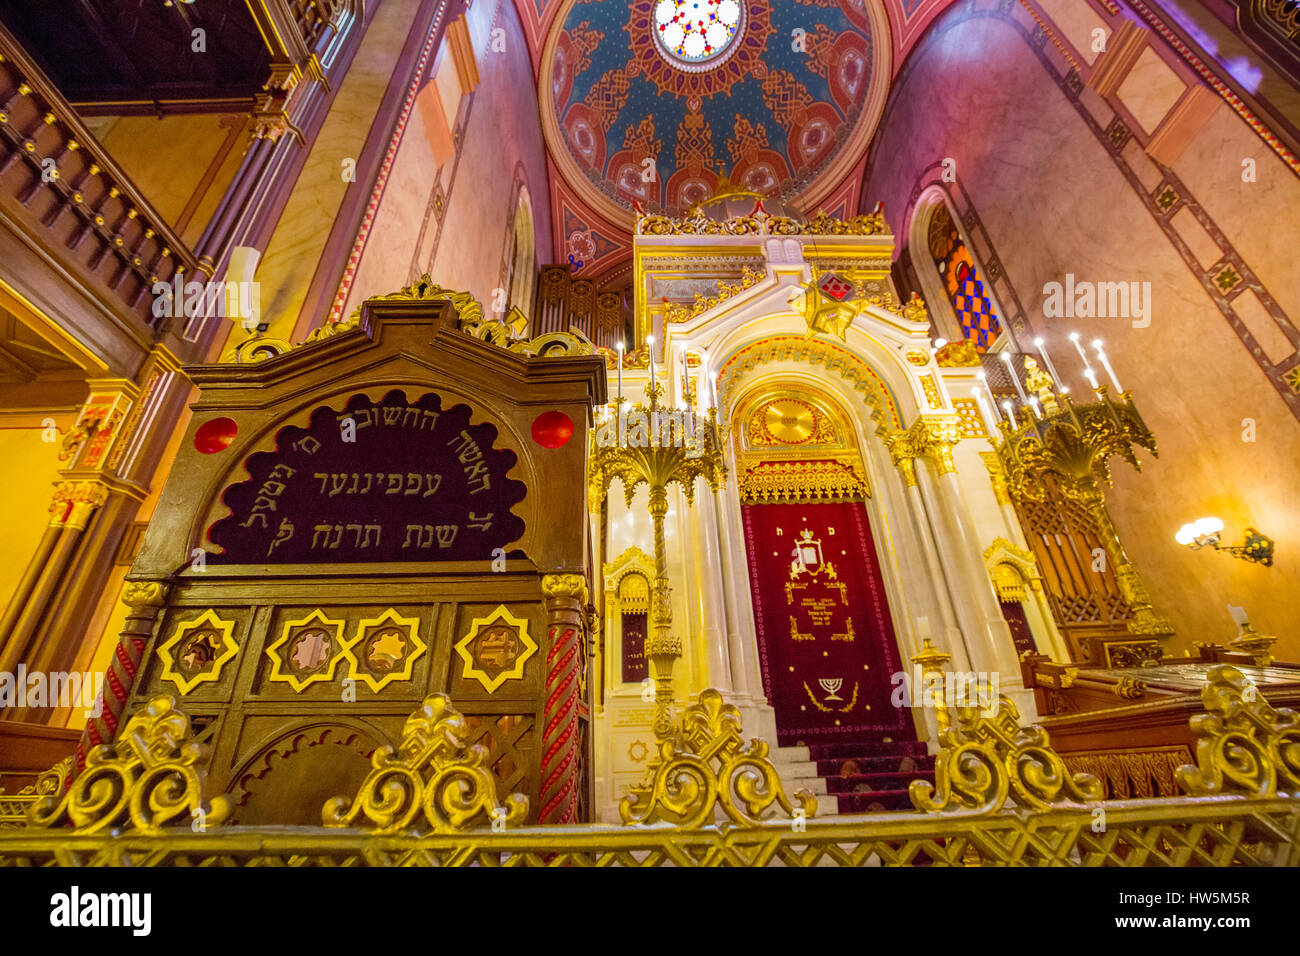 Interior of the Dohány Street or Great Jewish Synagogue nagy zsinagóga. The Second largest Synagogue in - Stock Image